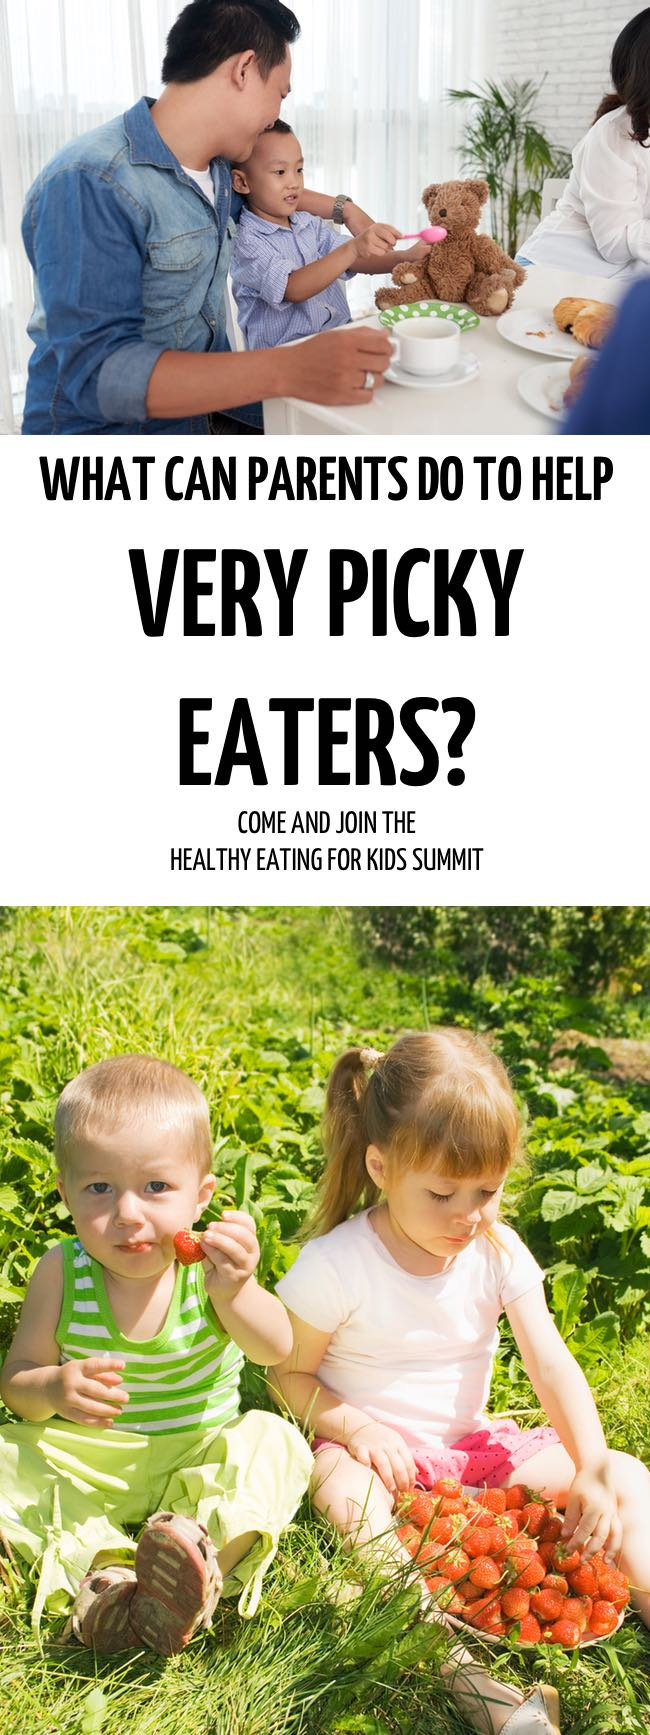 How can Parents Help Very Picky Eaters? Come and sign up for the Healthy Eating for Kids Summit and, learn how to stop meal time battles and find the stress free way to teach them healthy eating habits. #toddler #fussyeater #fussytoddler #toddlerwon'teat #pickyeater #parenting #positiveparenting